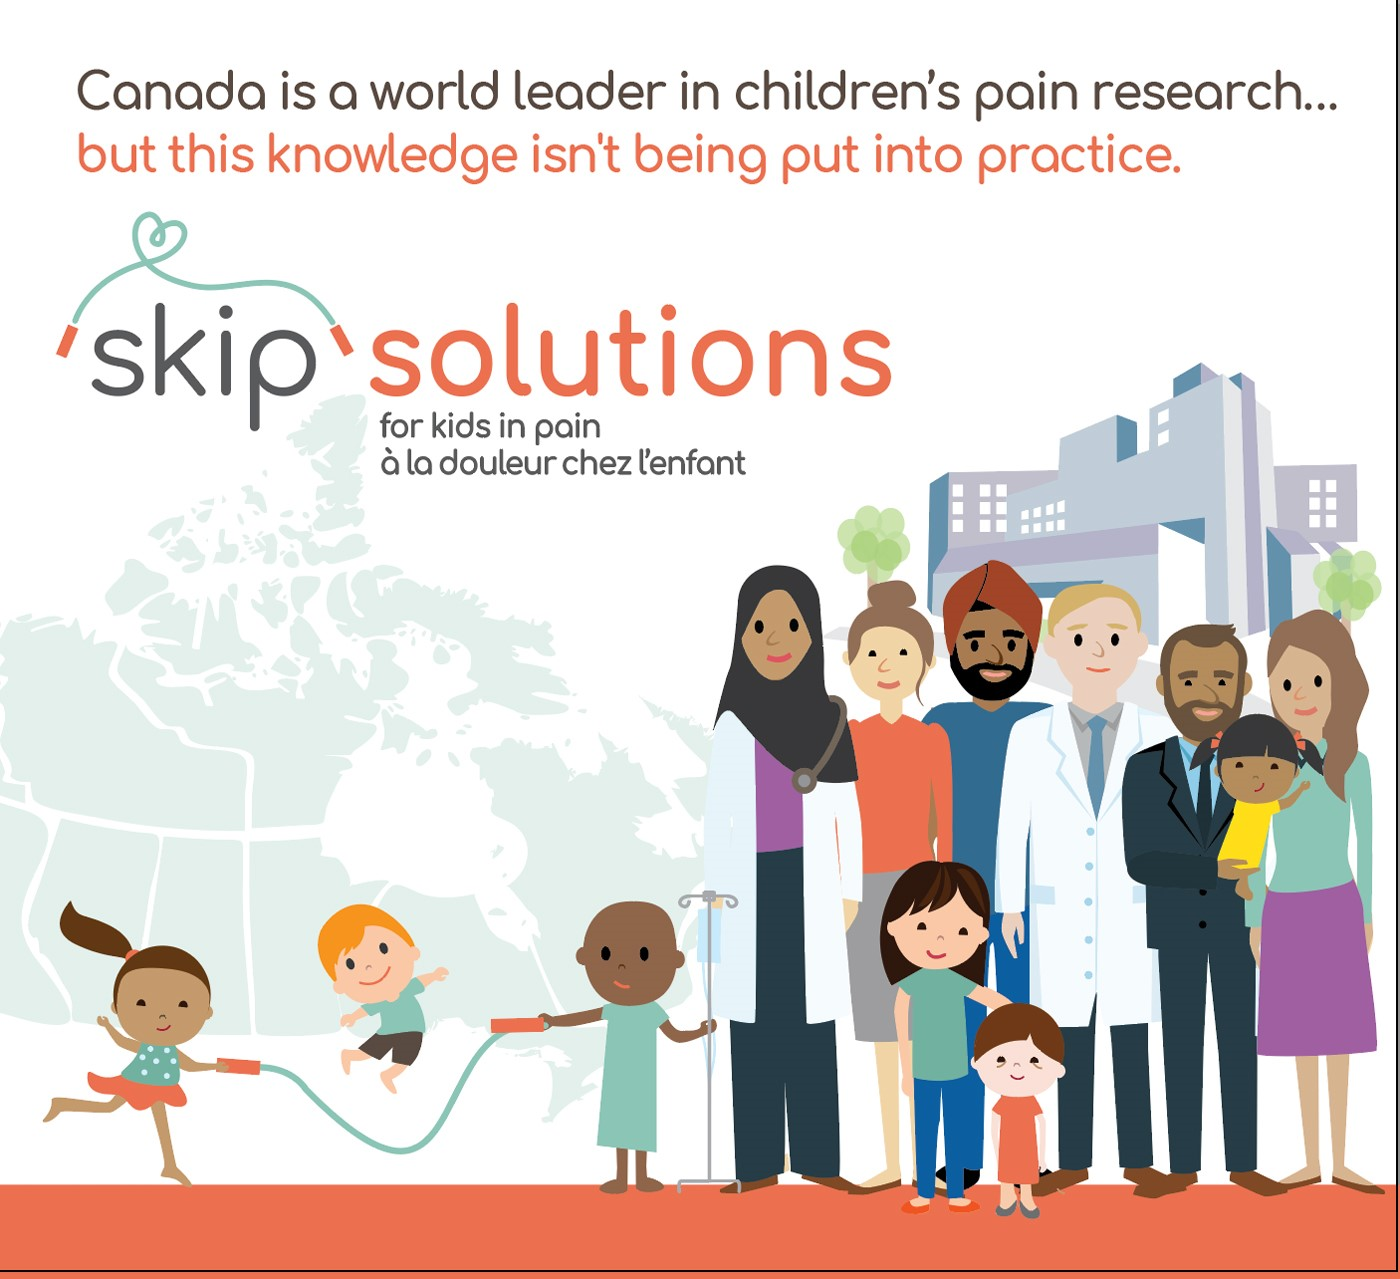 Major funding boost to improve pain management for children in Canada and around the world